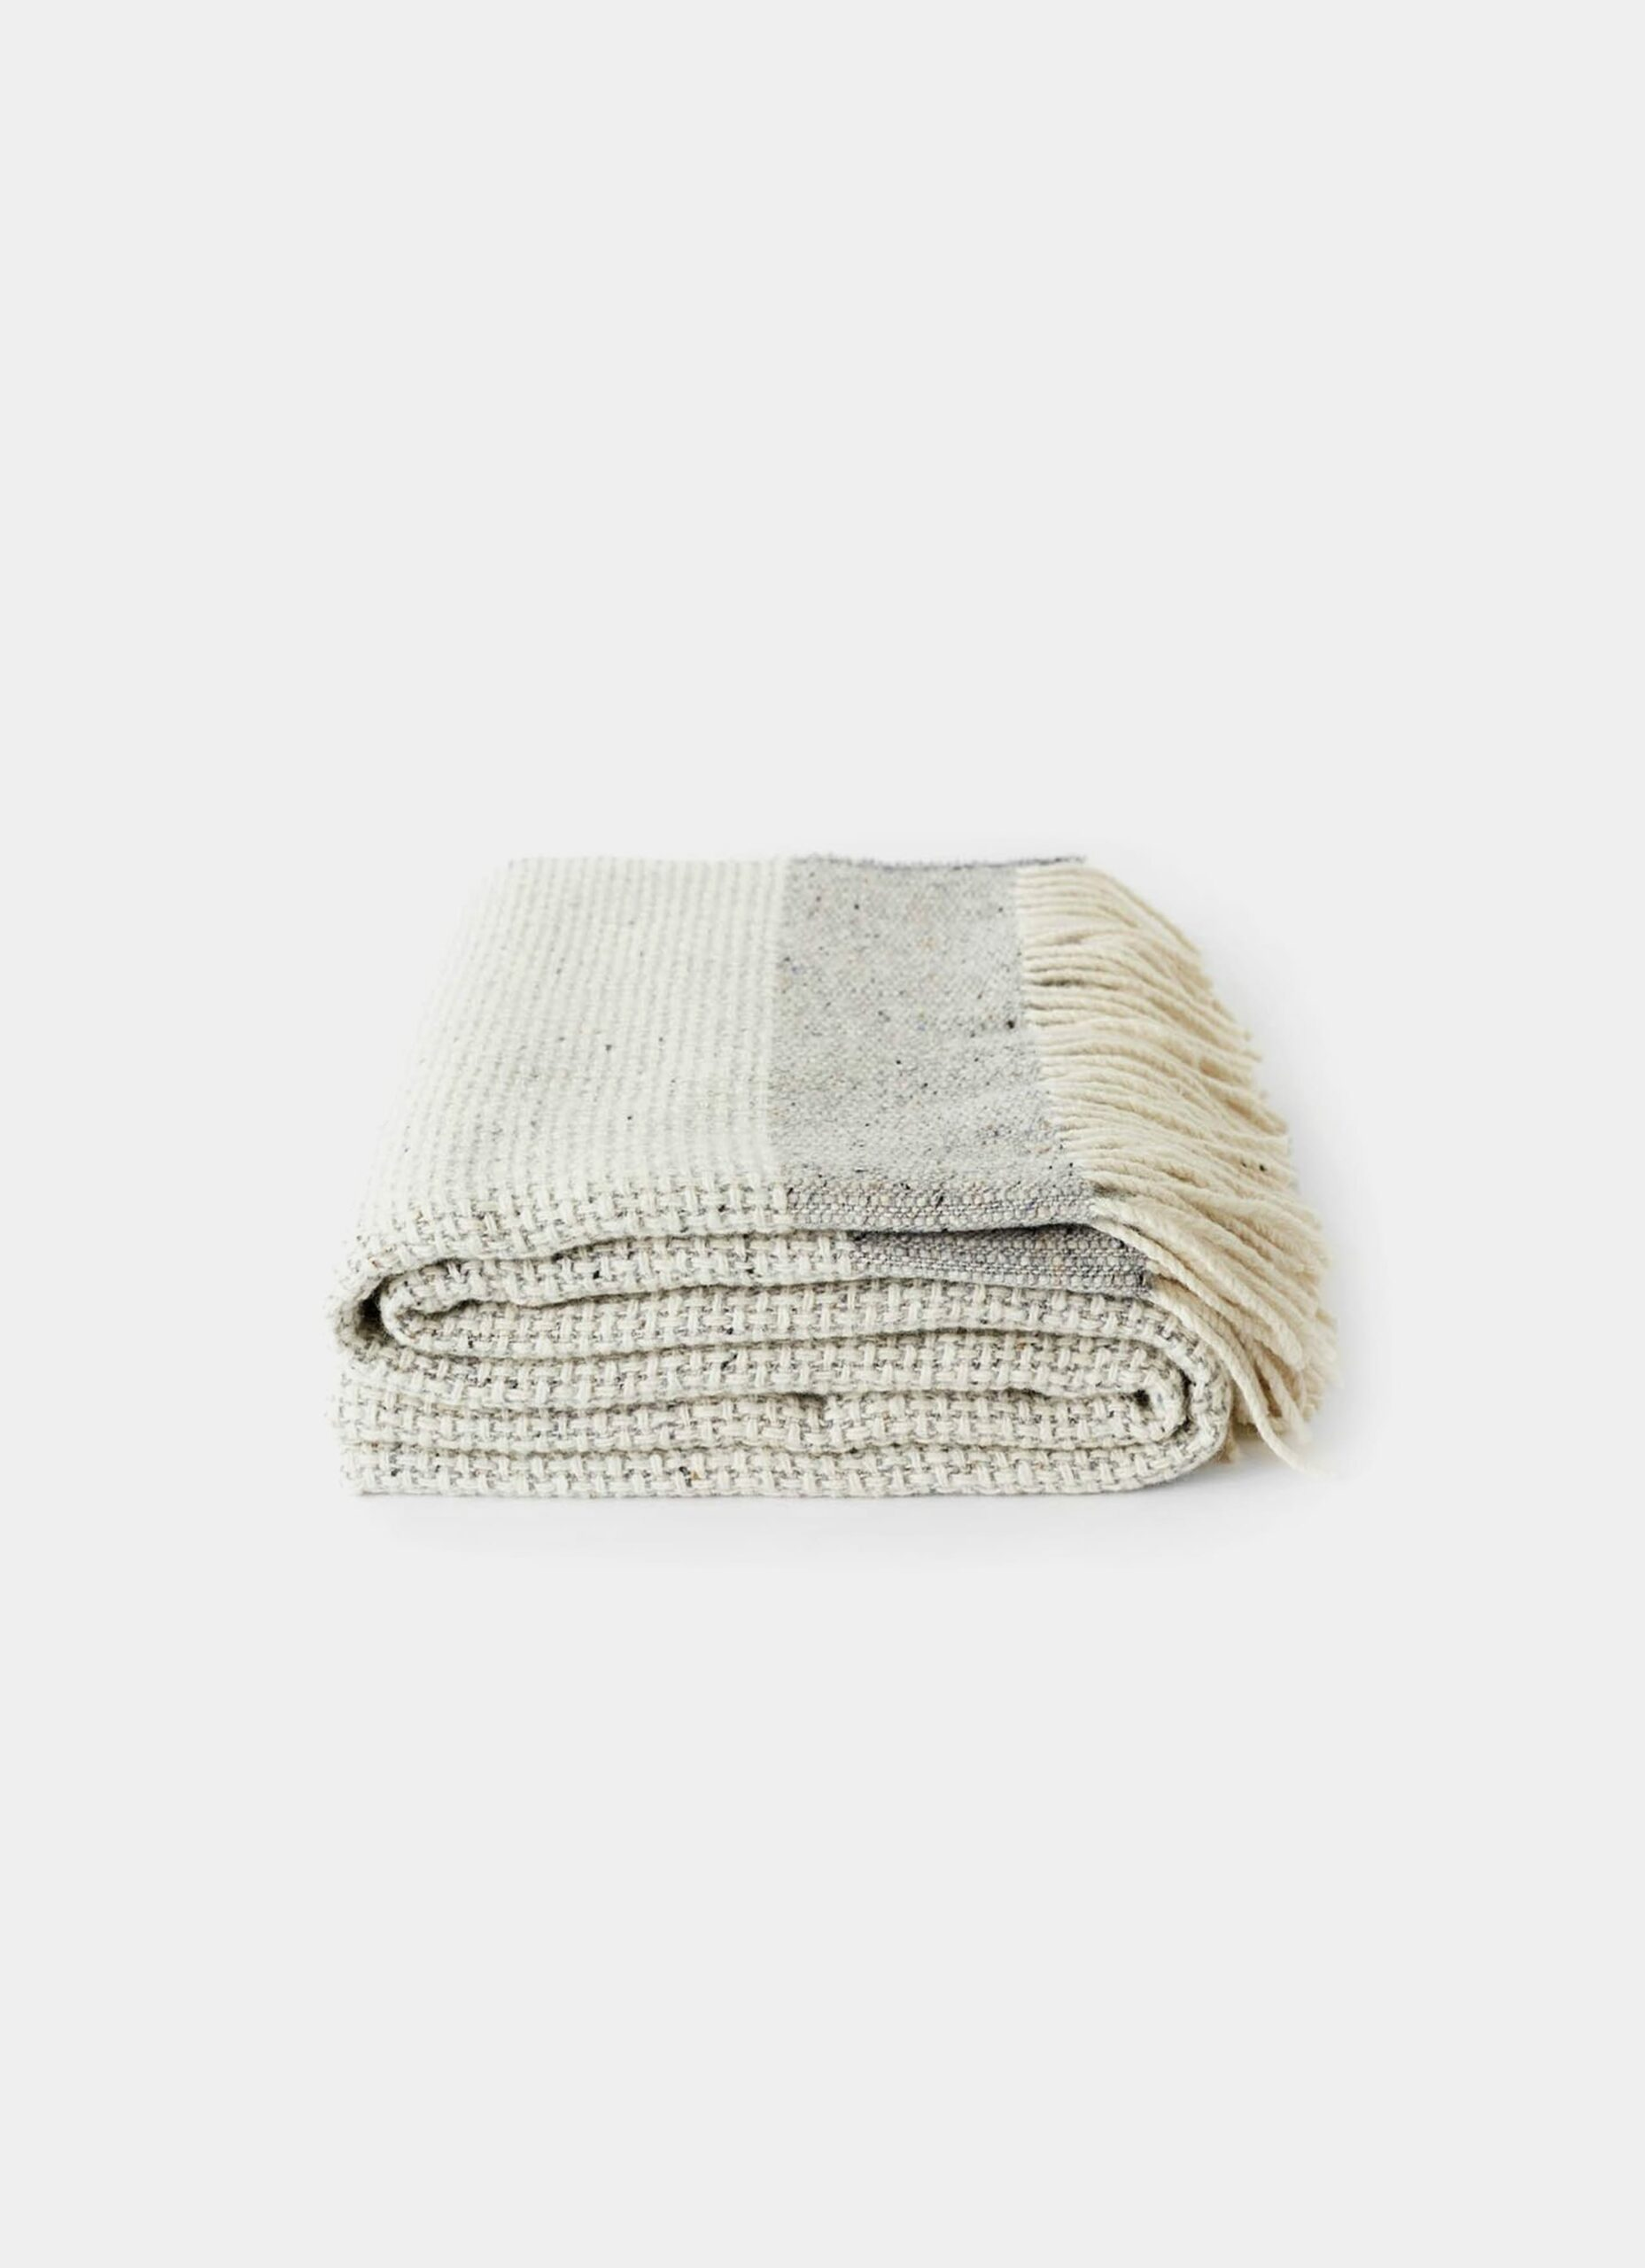 Mourne Textiles - Mended Tweed - Merino Blanket - Silver Grey with band